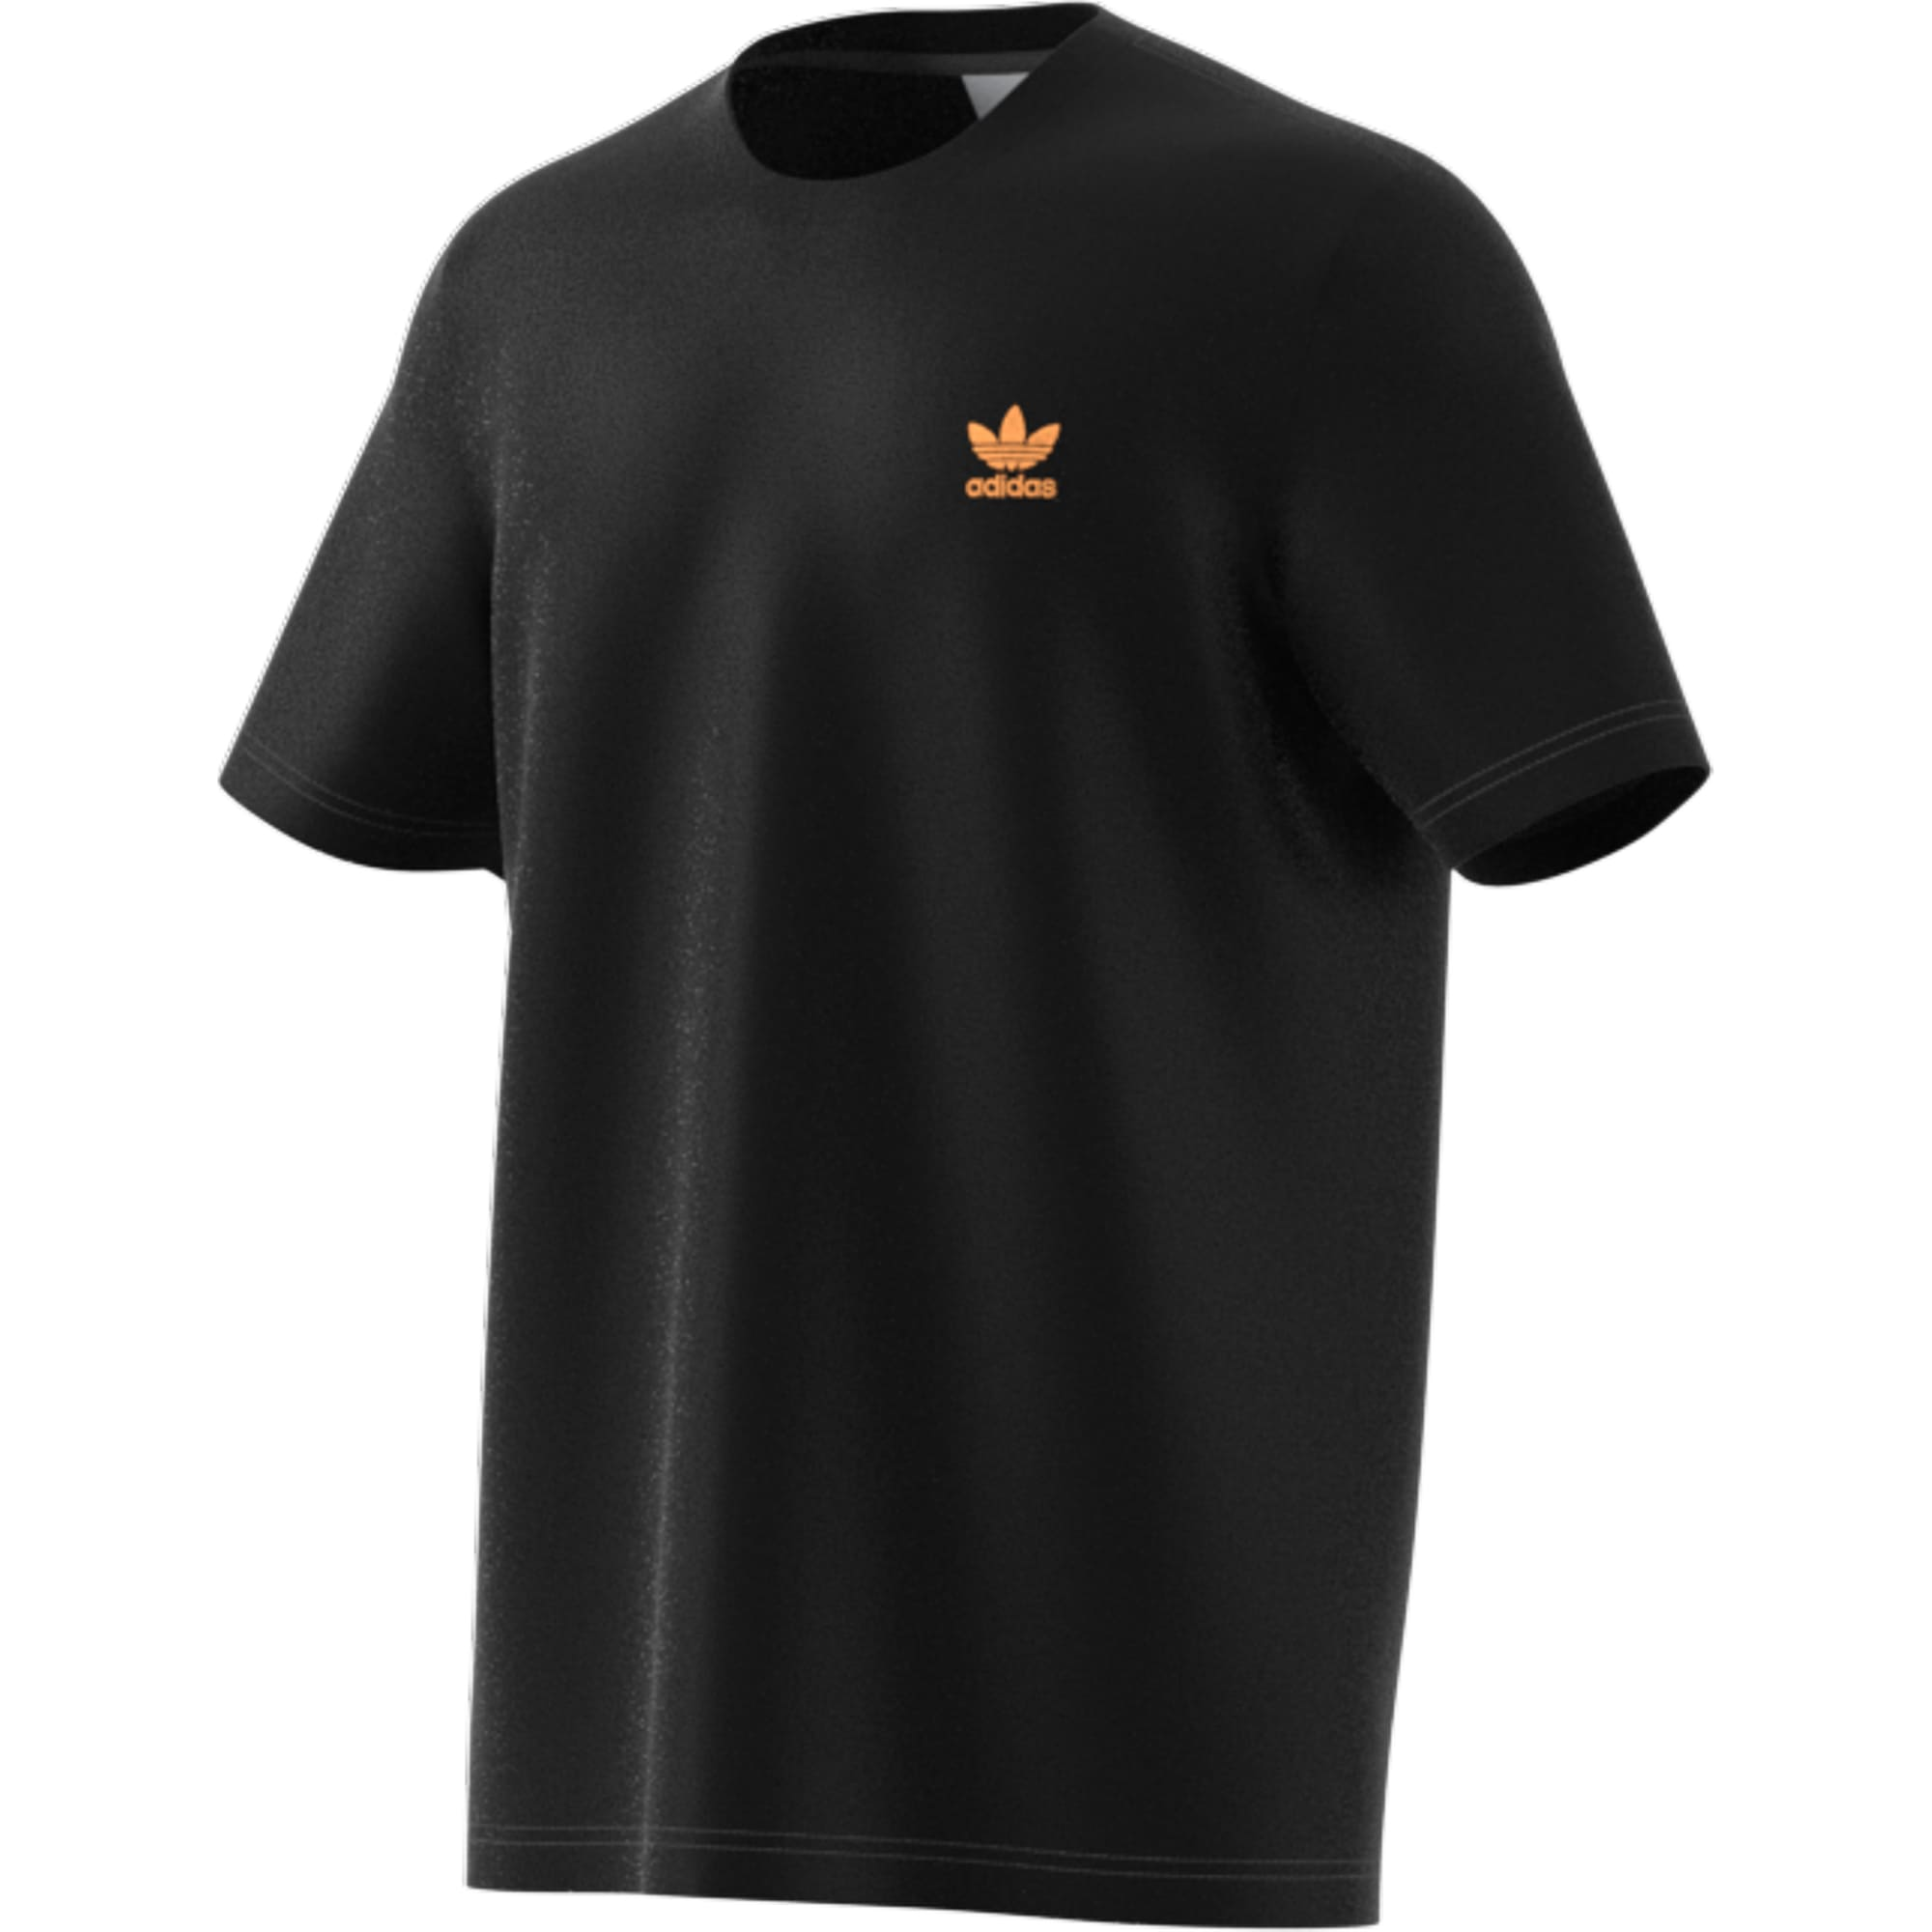 Camiseta Adidas Originals Essentials - Preto